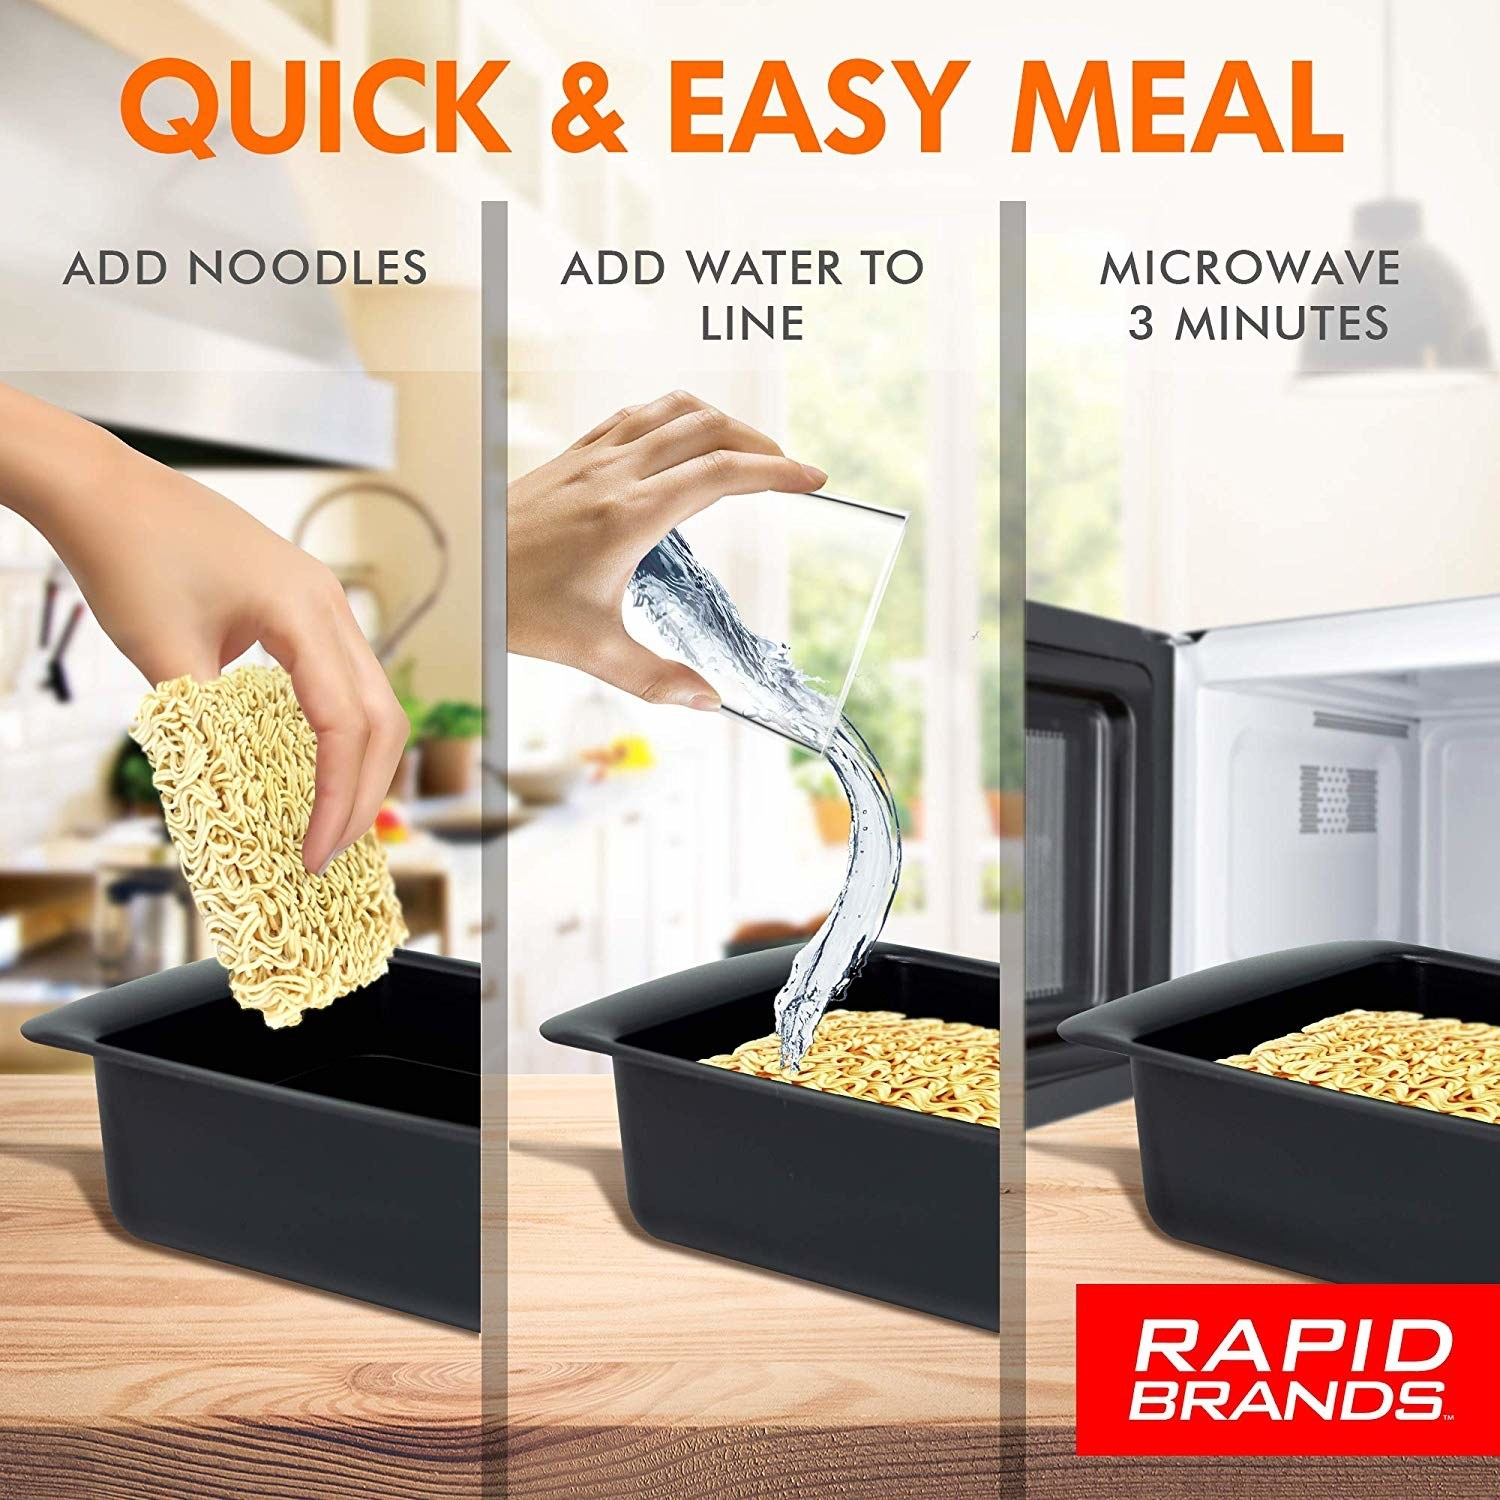 Diagram showing how to use the ramen cooker